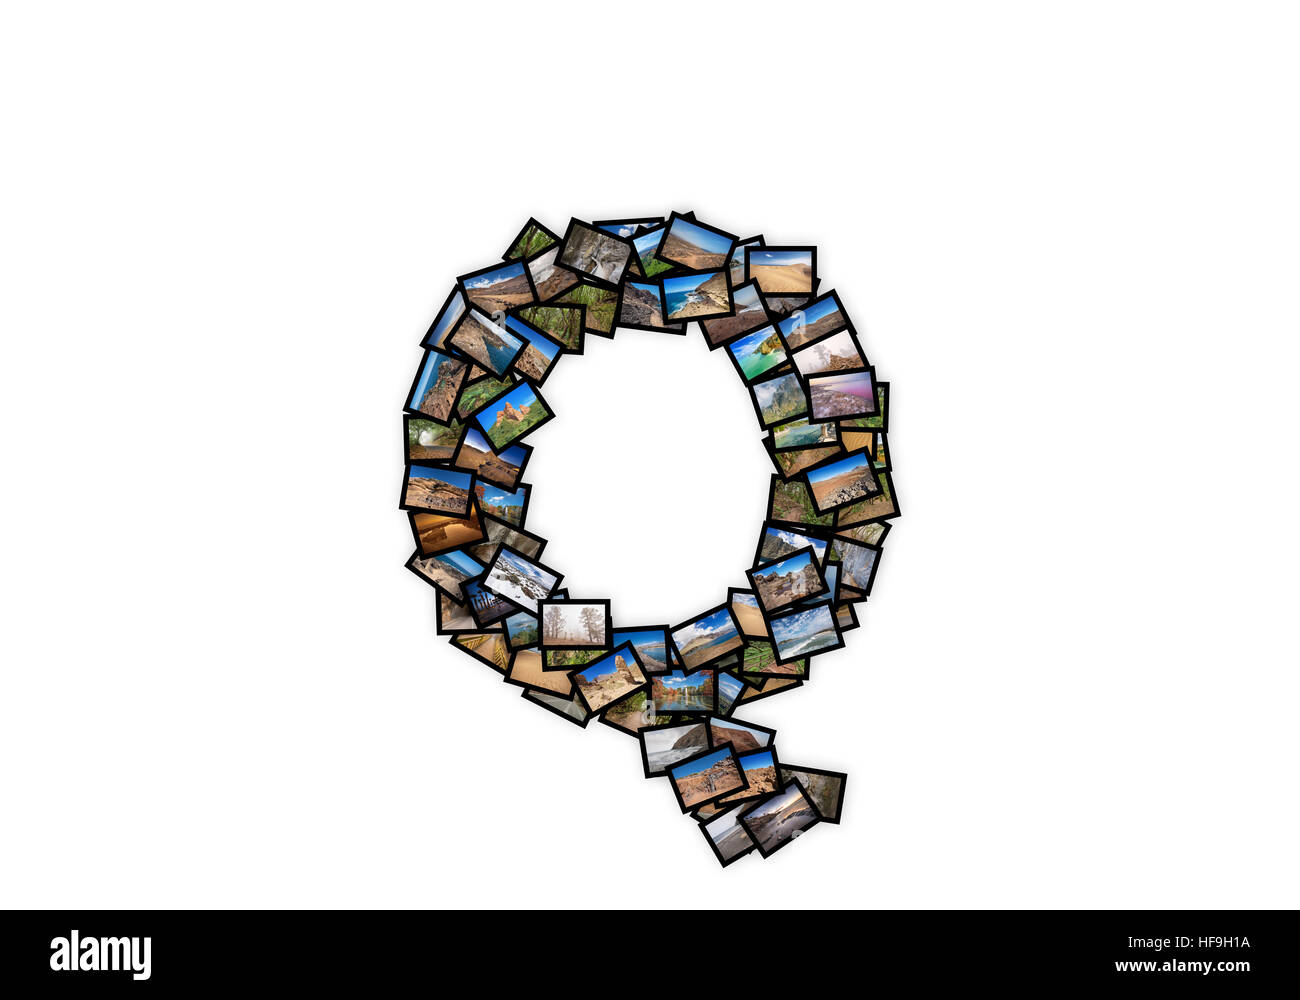 Letter Q uppercase font shape alphabet collage made of my best landscape photographs. Version 2. - Stock Image